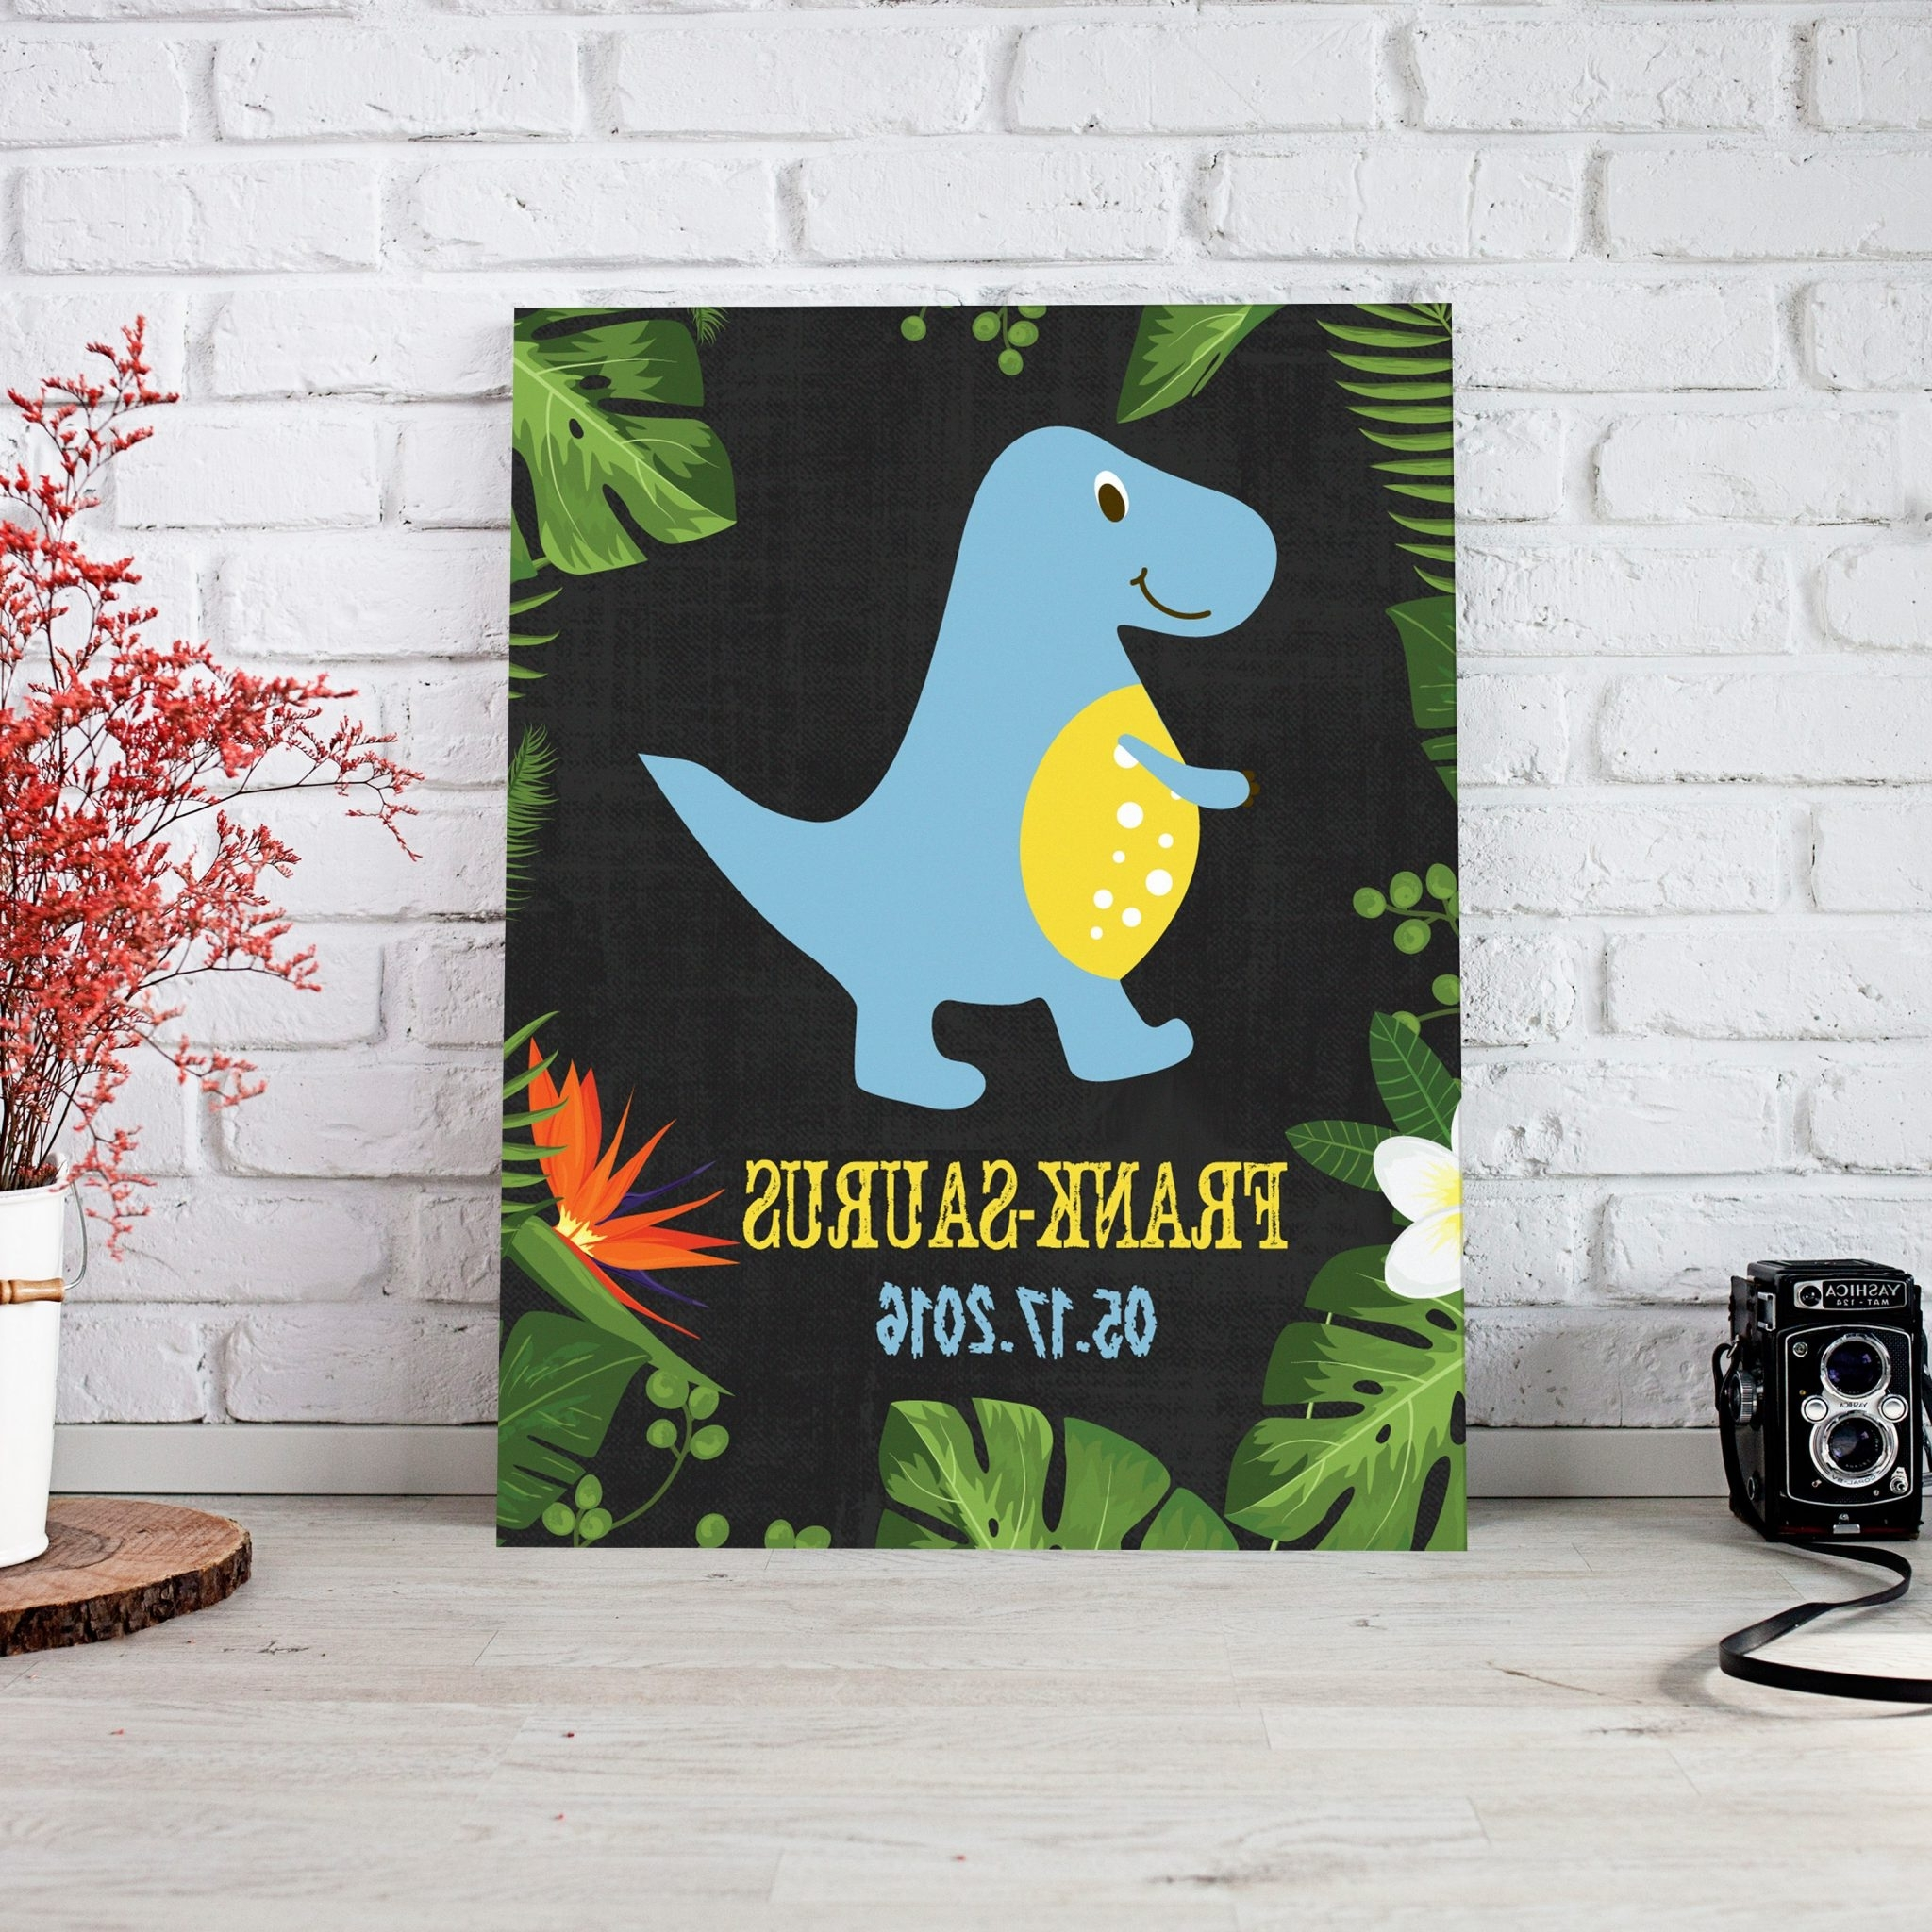 Personalized Nursery Canvas Wall Art For Most Up To Date Blue Dinosaur Personalized Nursery Décor Canvas Wall Art – Paper Blast (View 5 of 15)